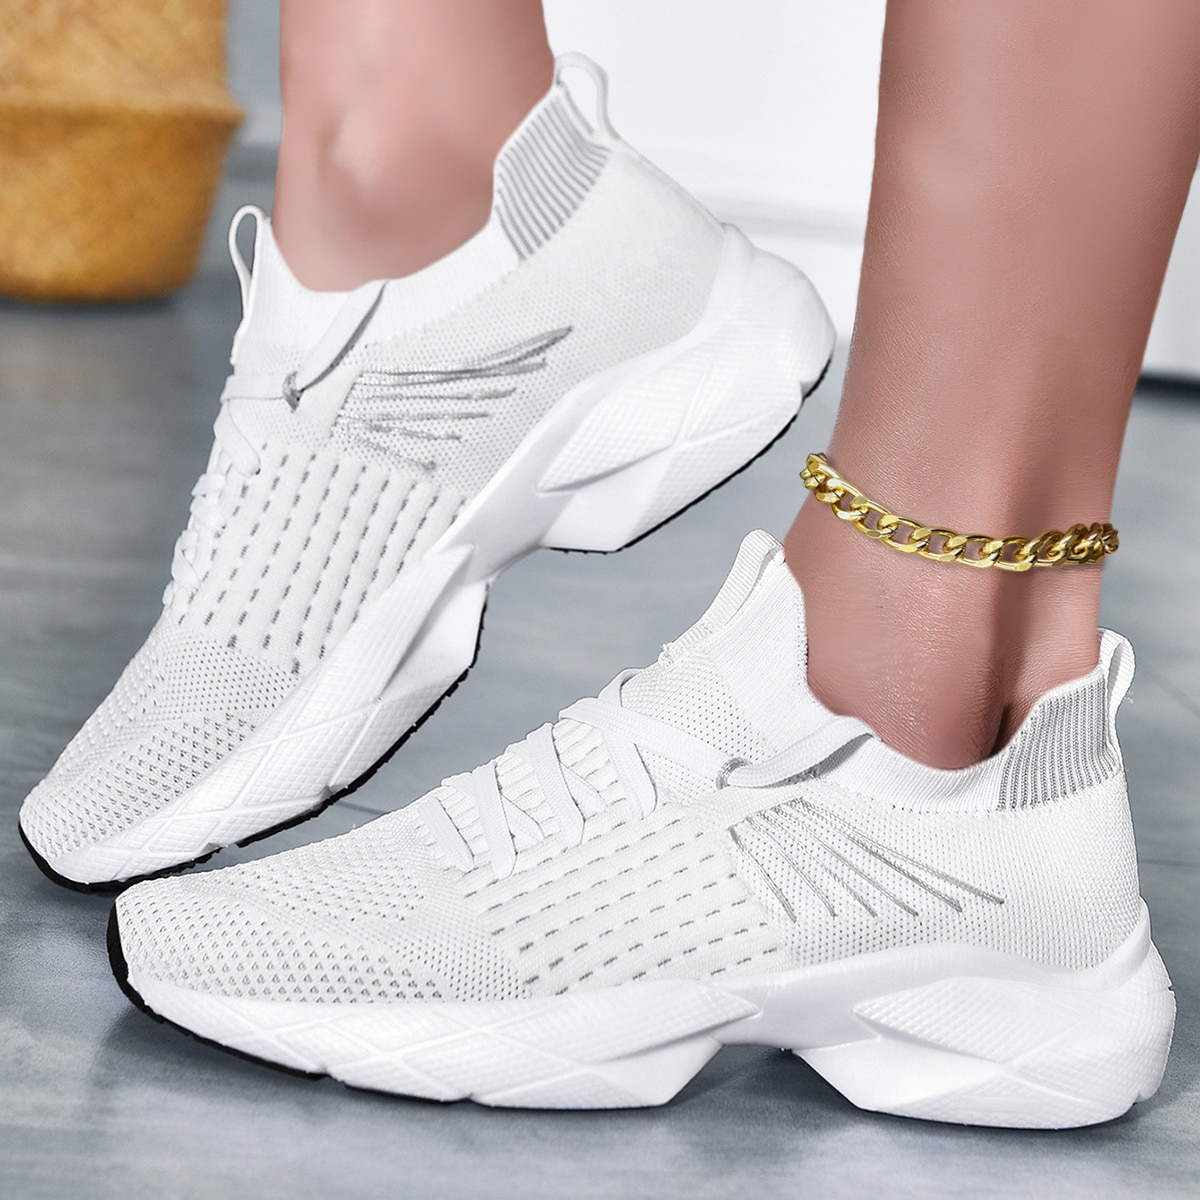 Knit Hollow Out Running Shoes, SHEIN  - buy with discount